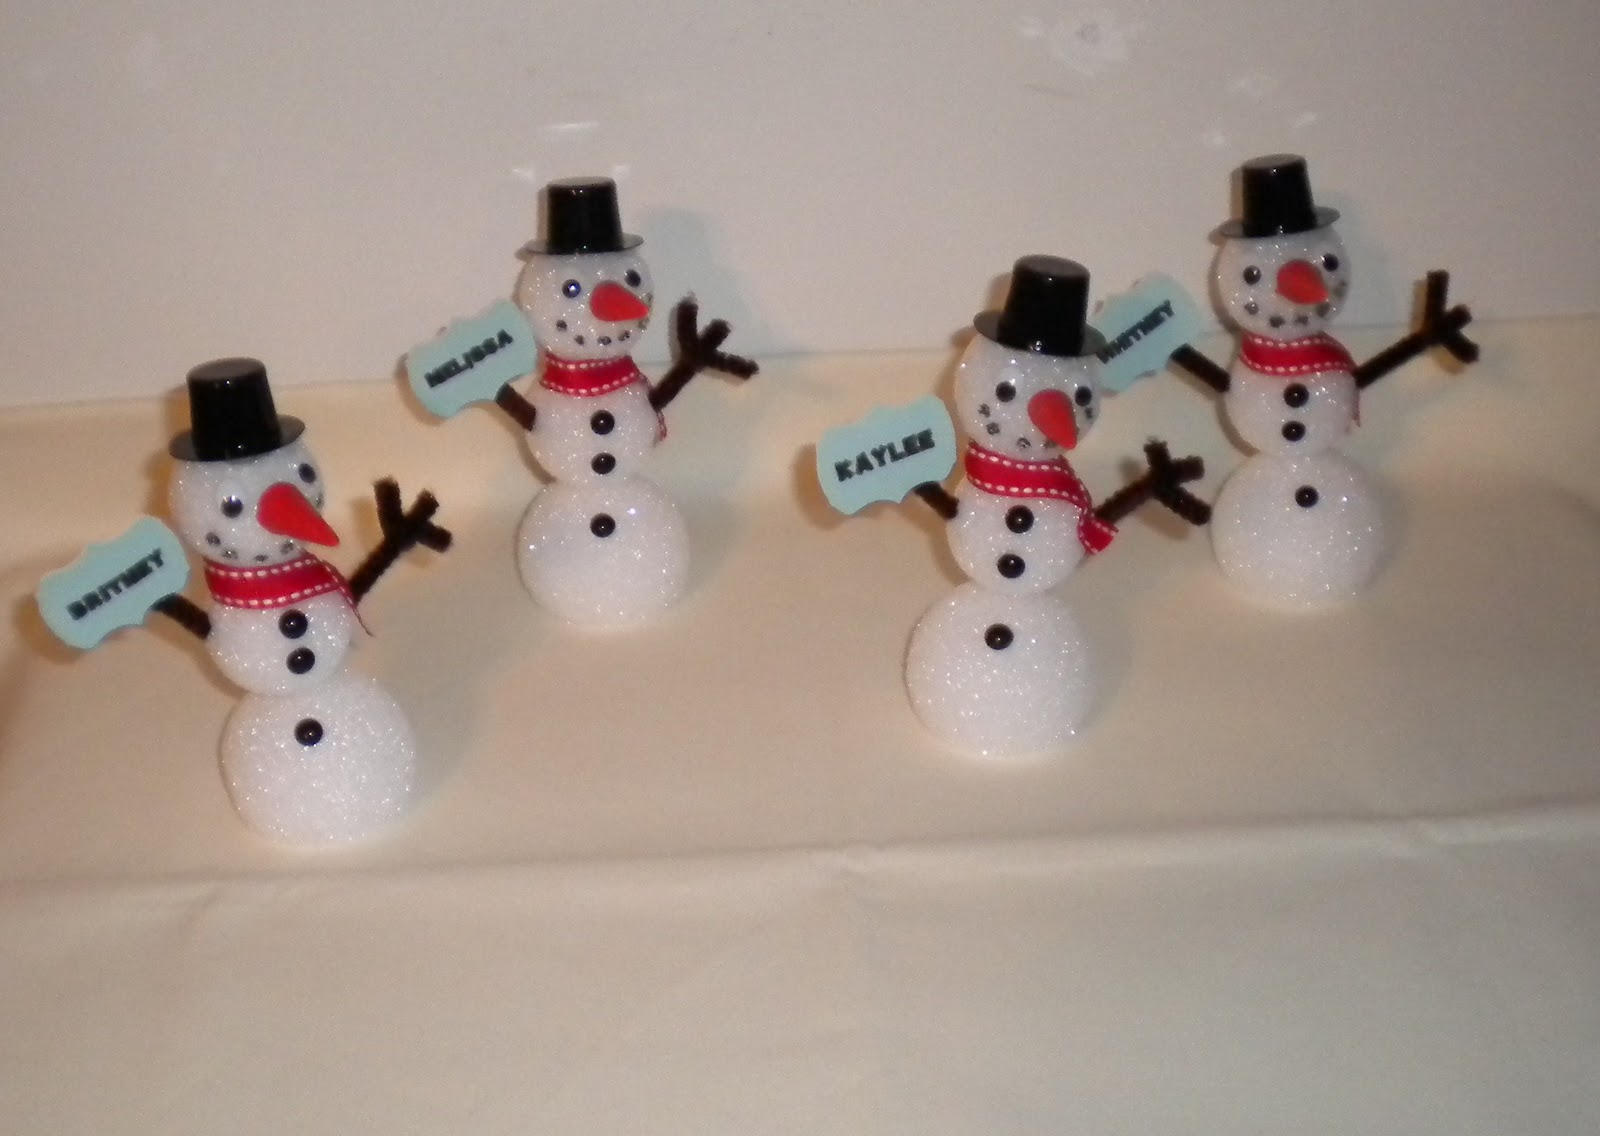 To Make These I Started Out With Small Styrofoam And A Skewer You Will Need 1 Ball Sized 2 Inches For Each Snowman